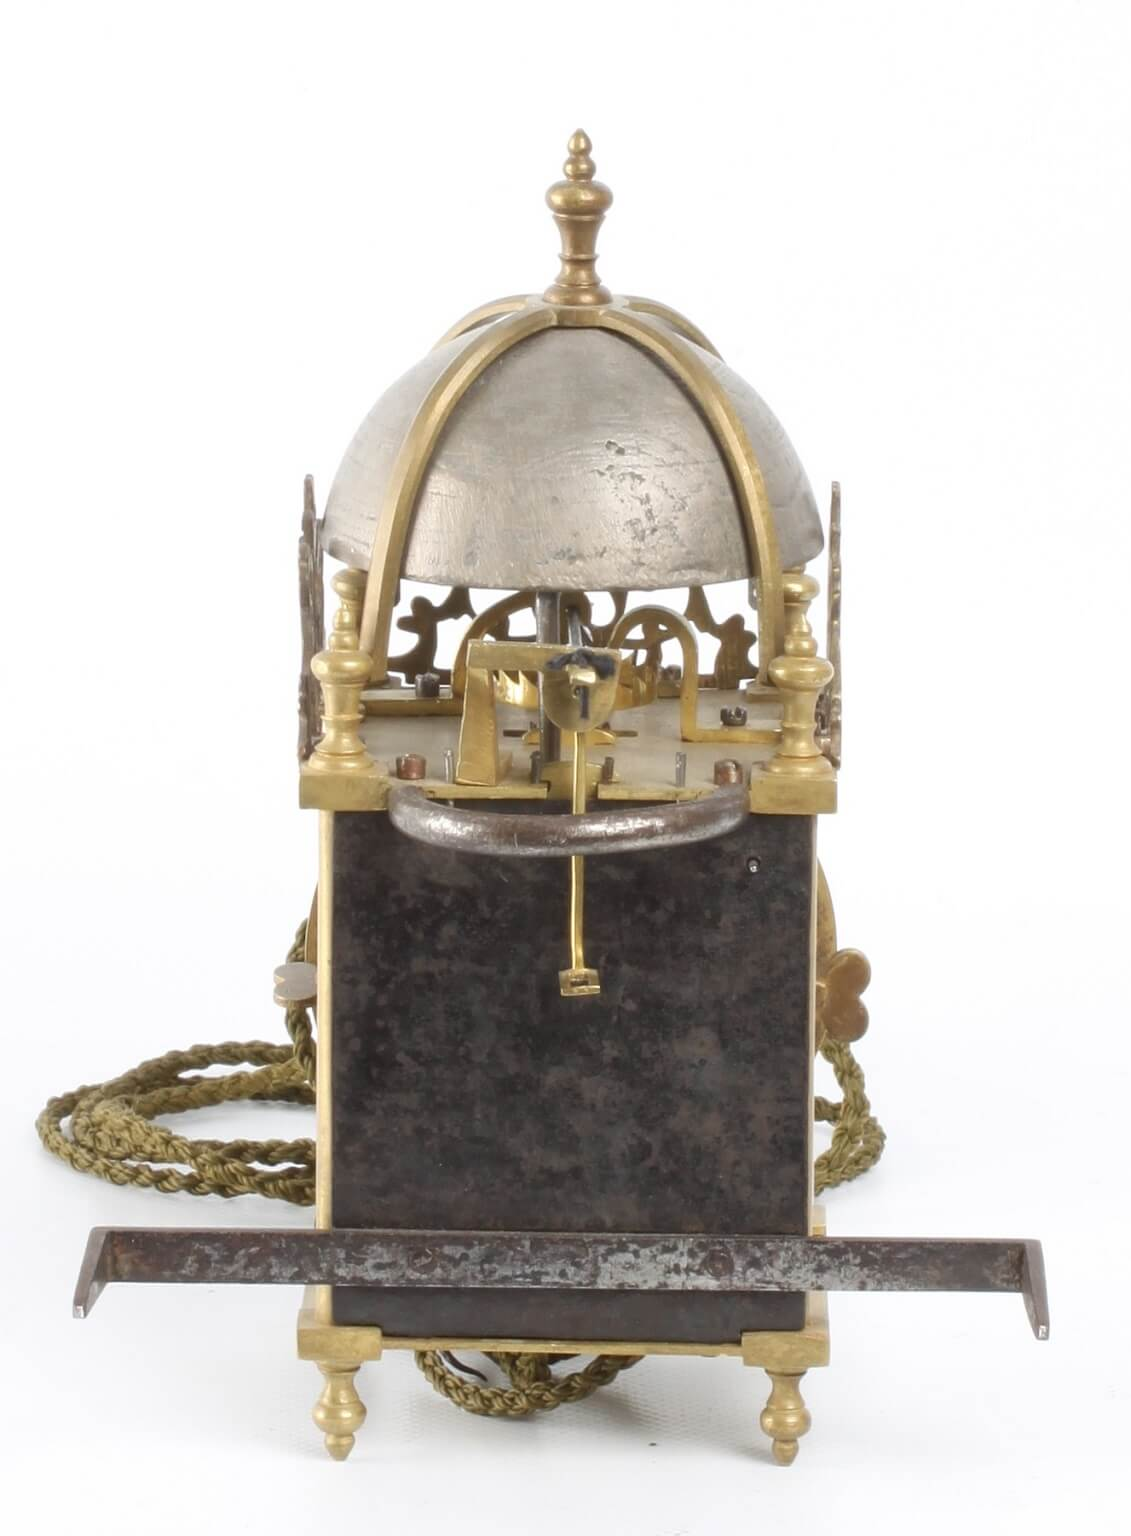 Mantel Height A Miniature French Brass Alarm Lantern Wall Timepiece